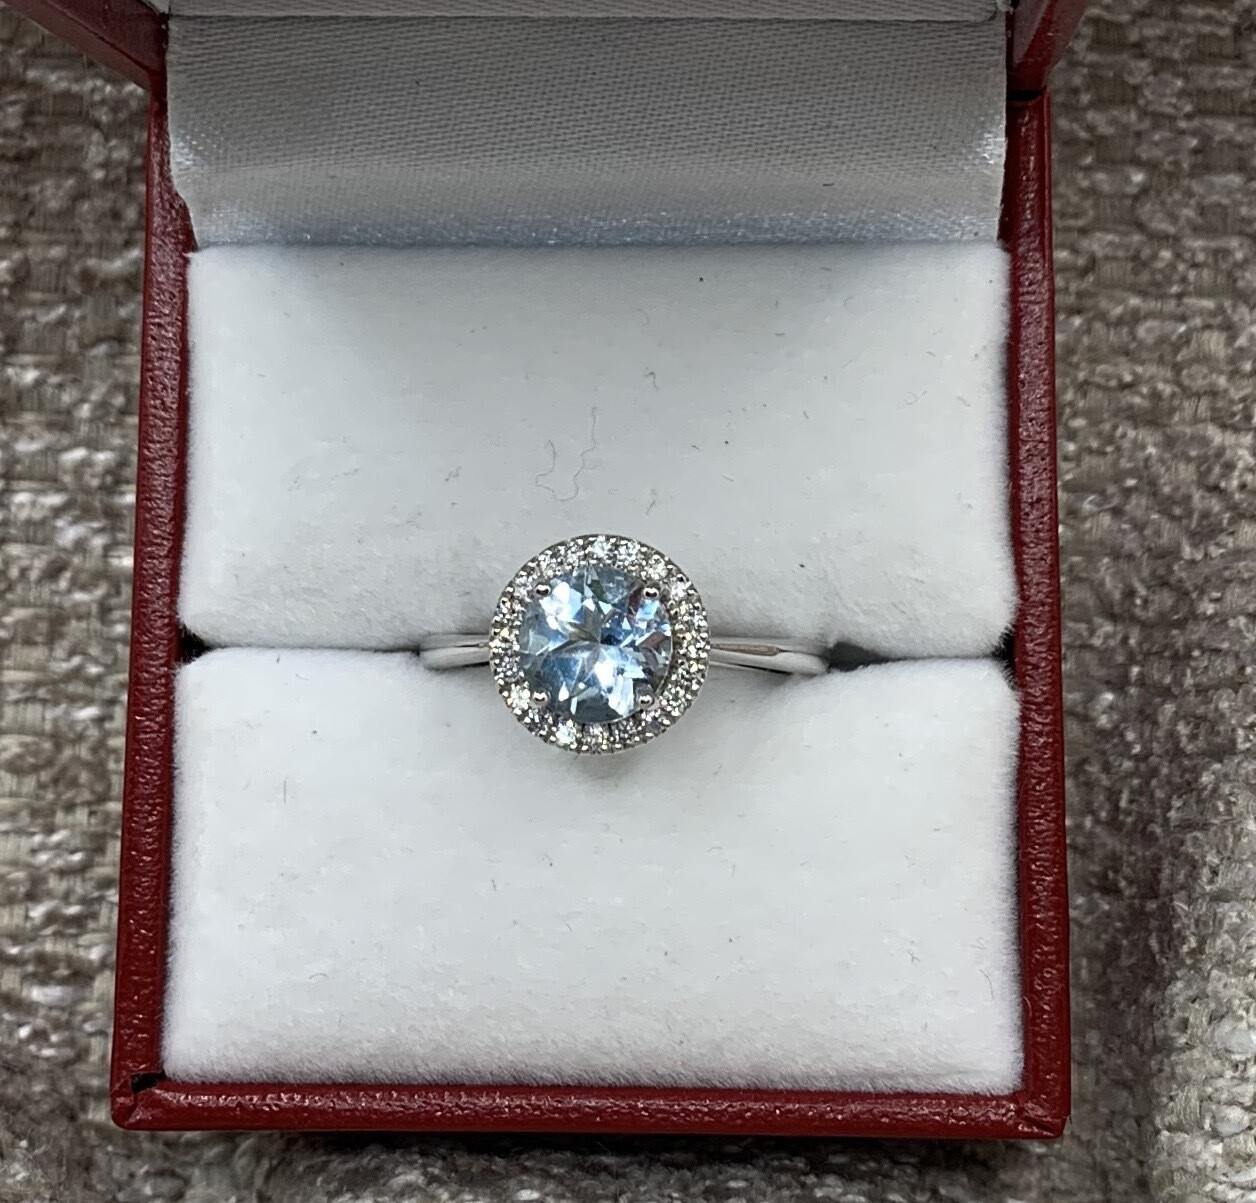 Brilliant Aquamarine With Diamond Halo